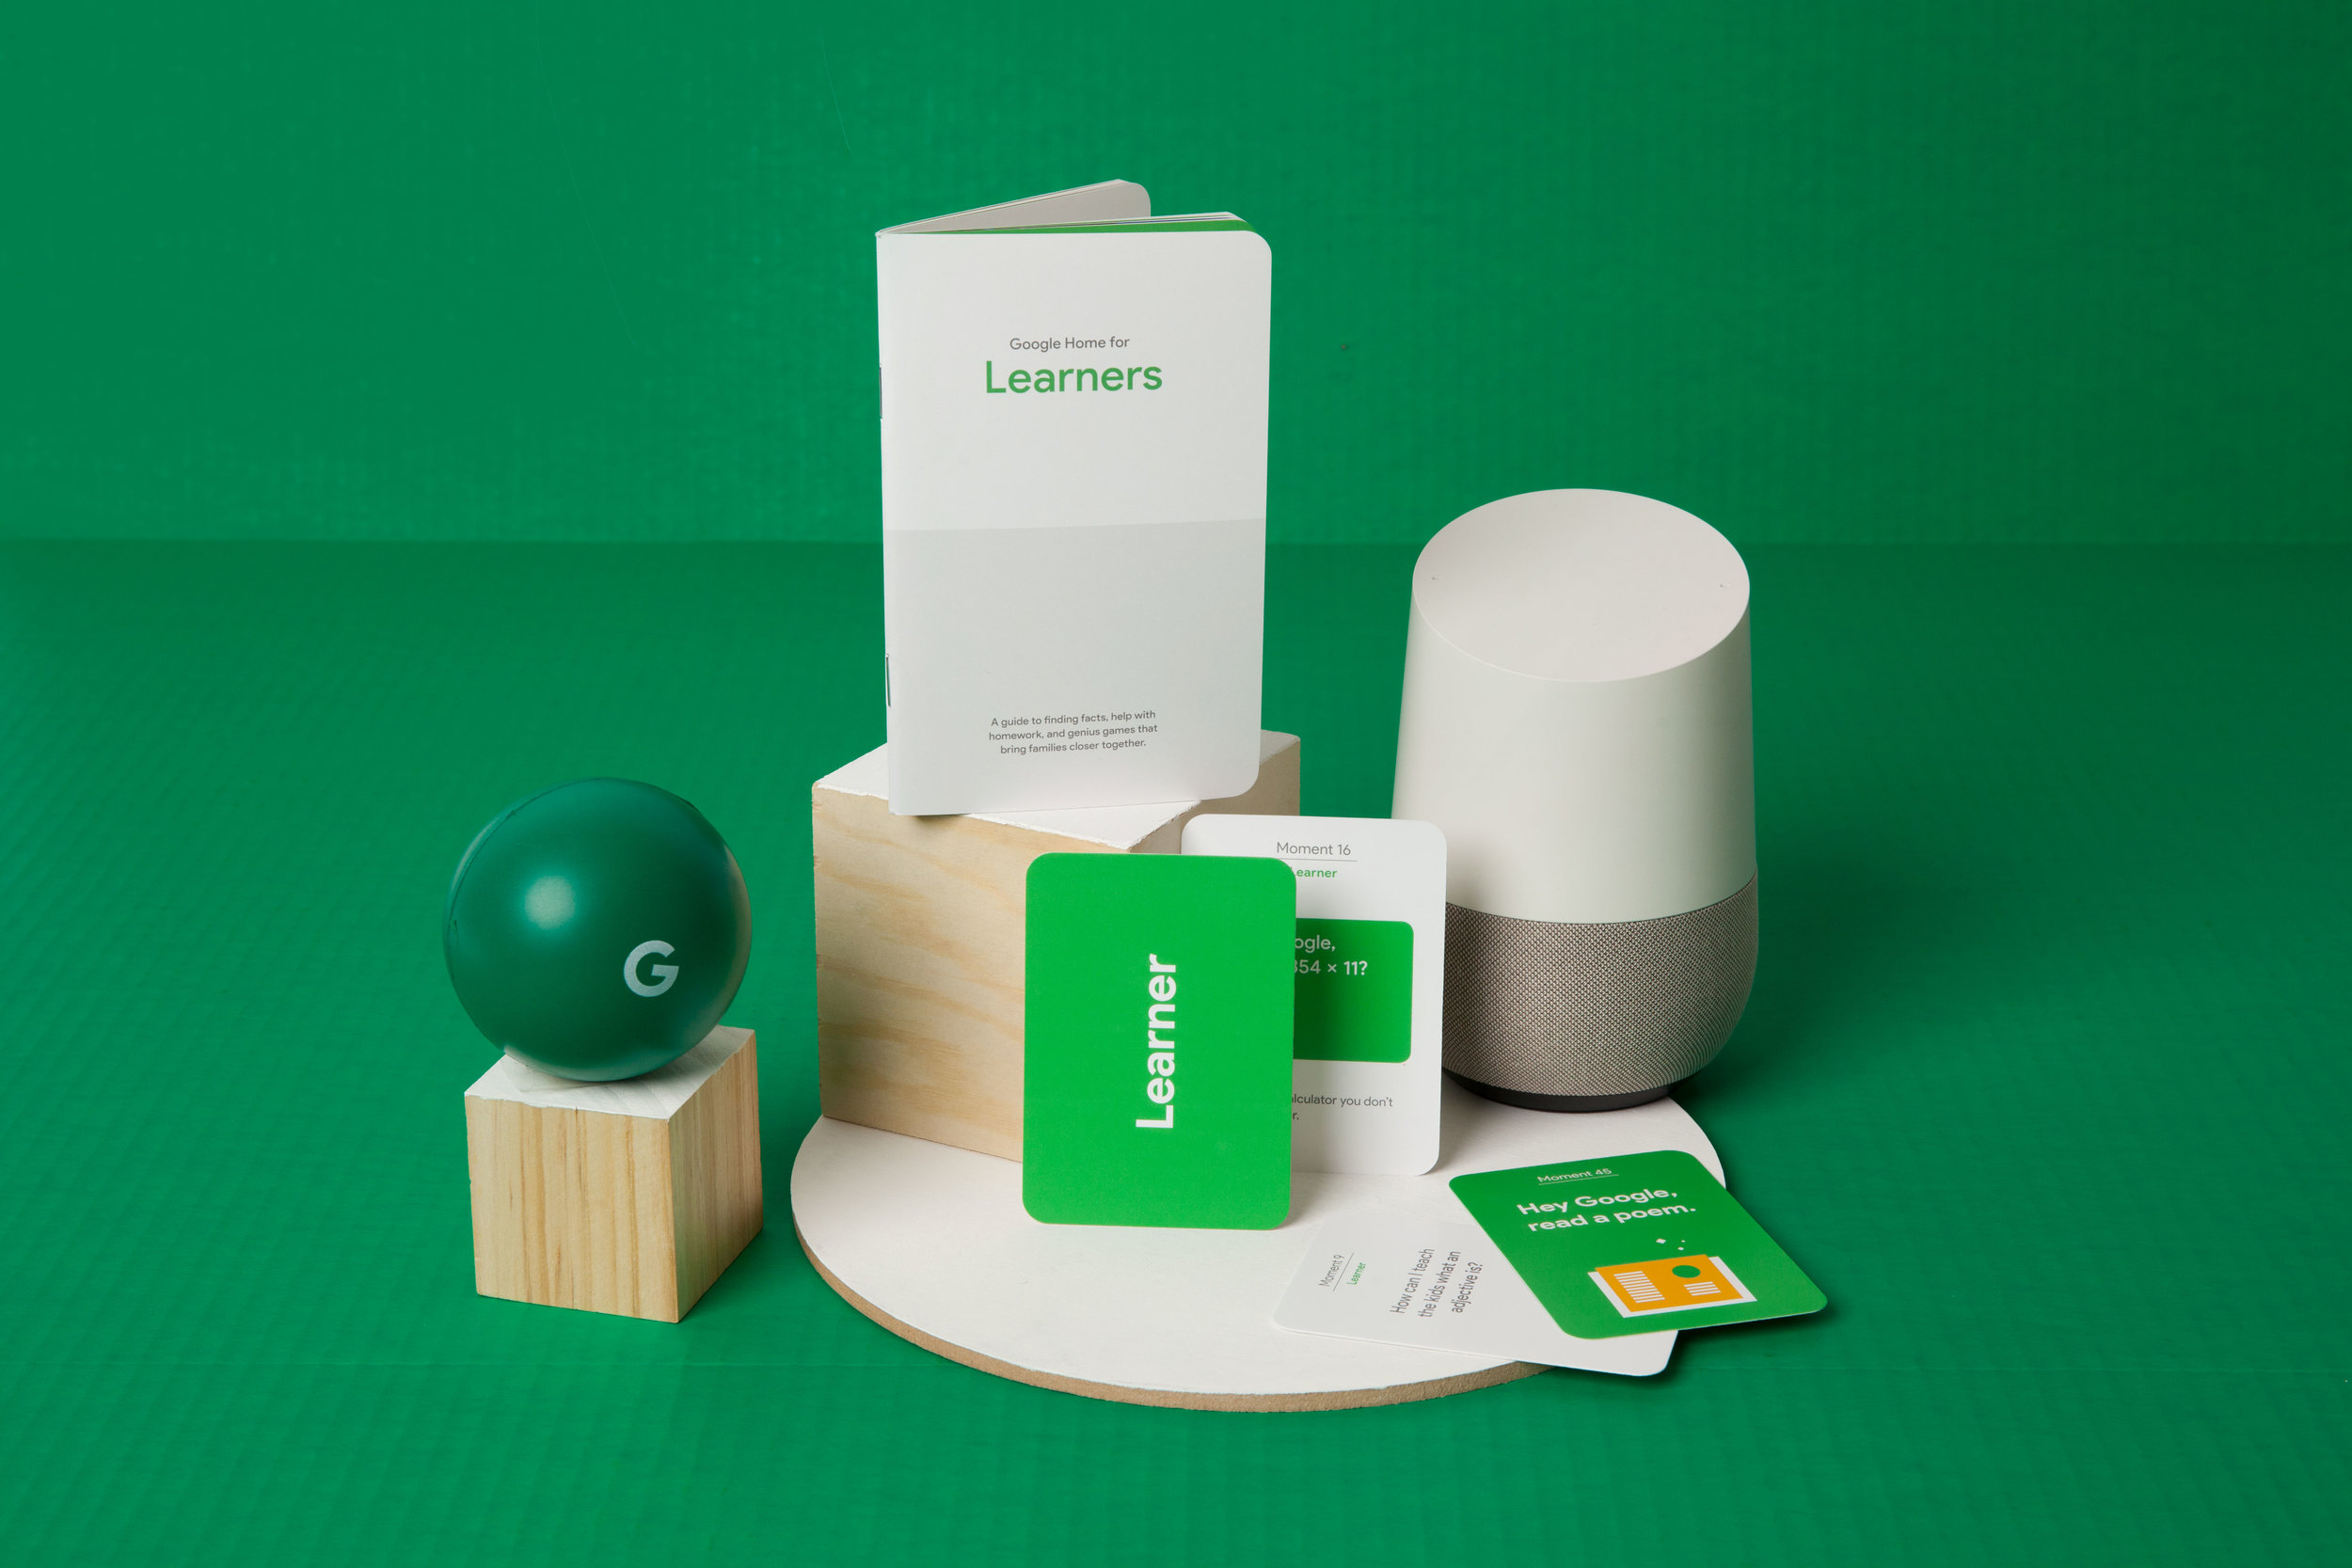 Google_Home-029_Green_Web.jpg